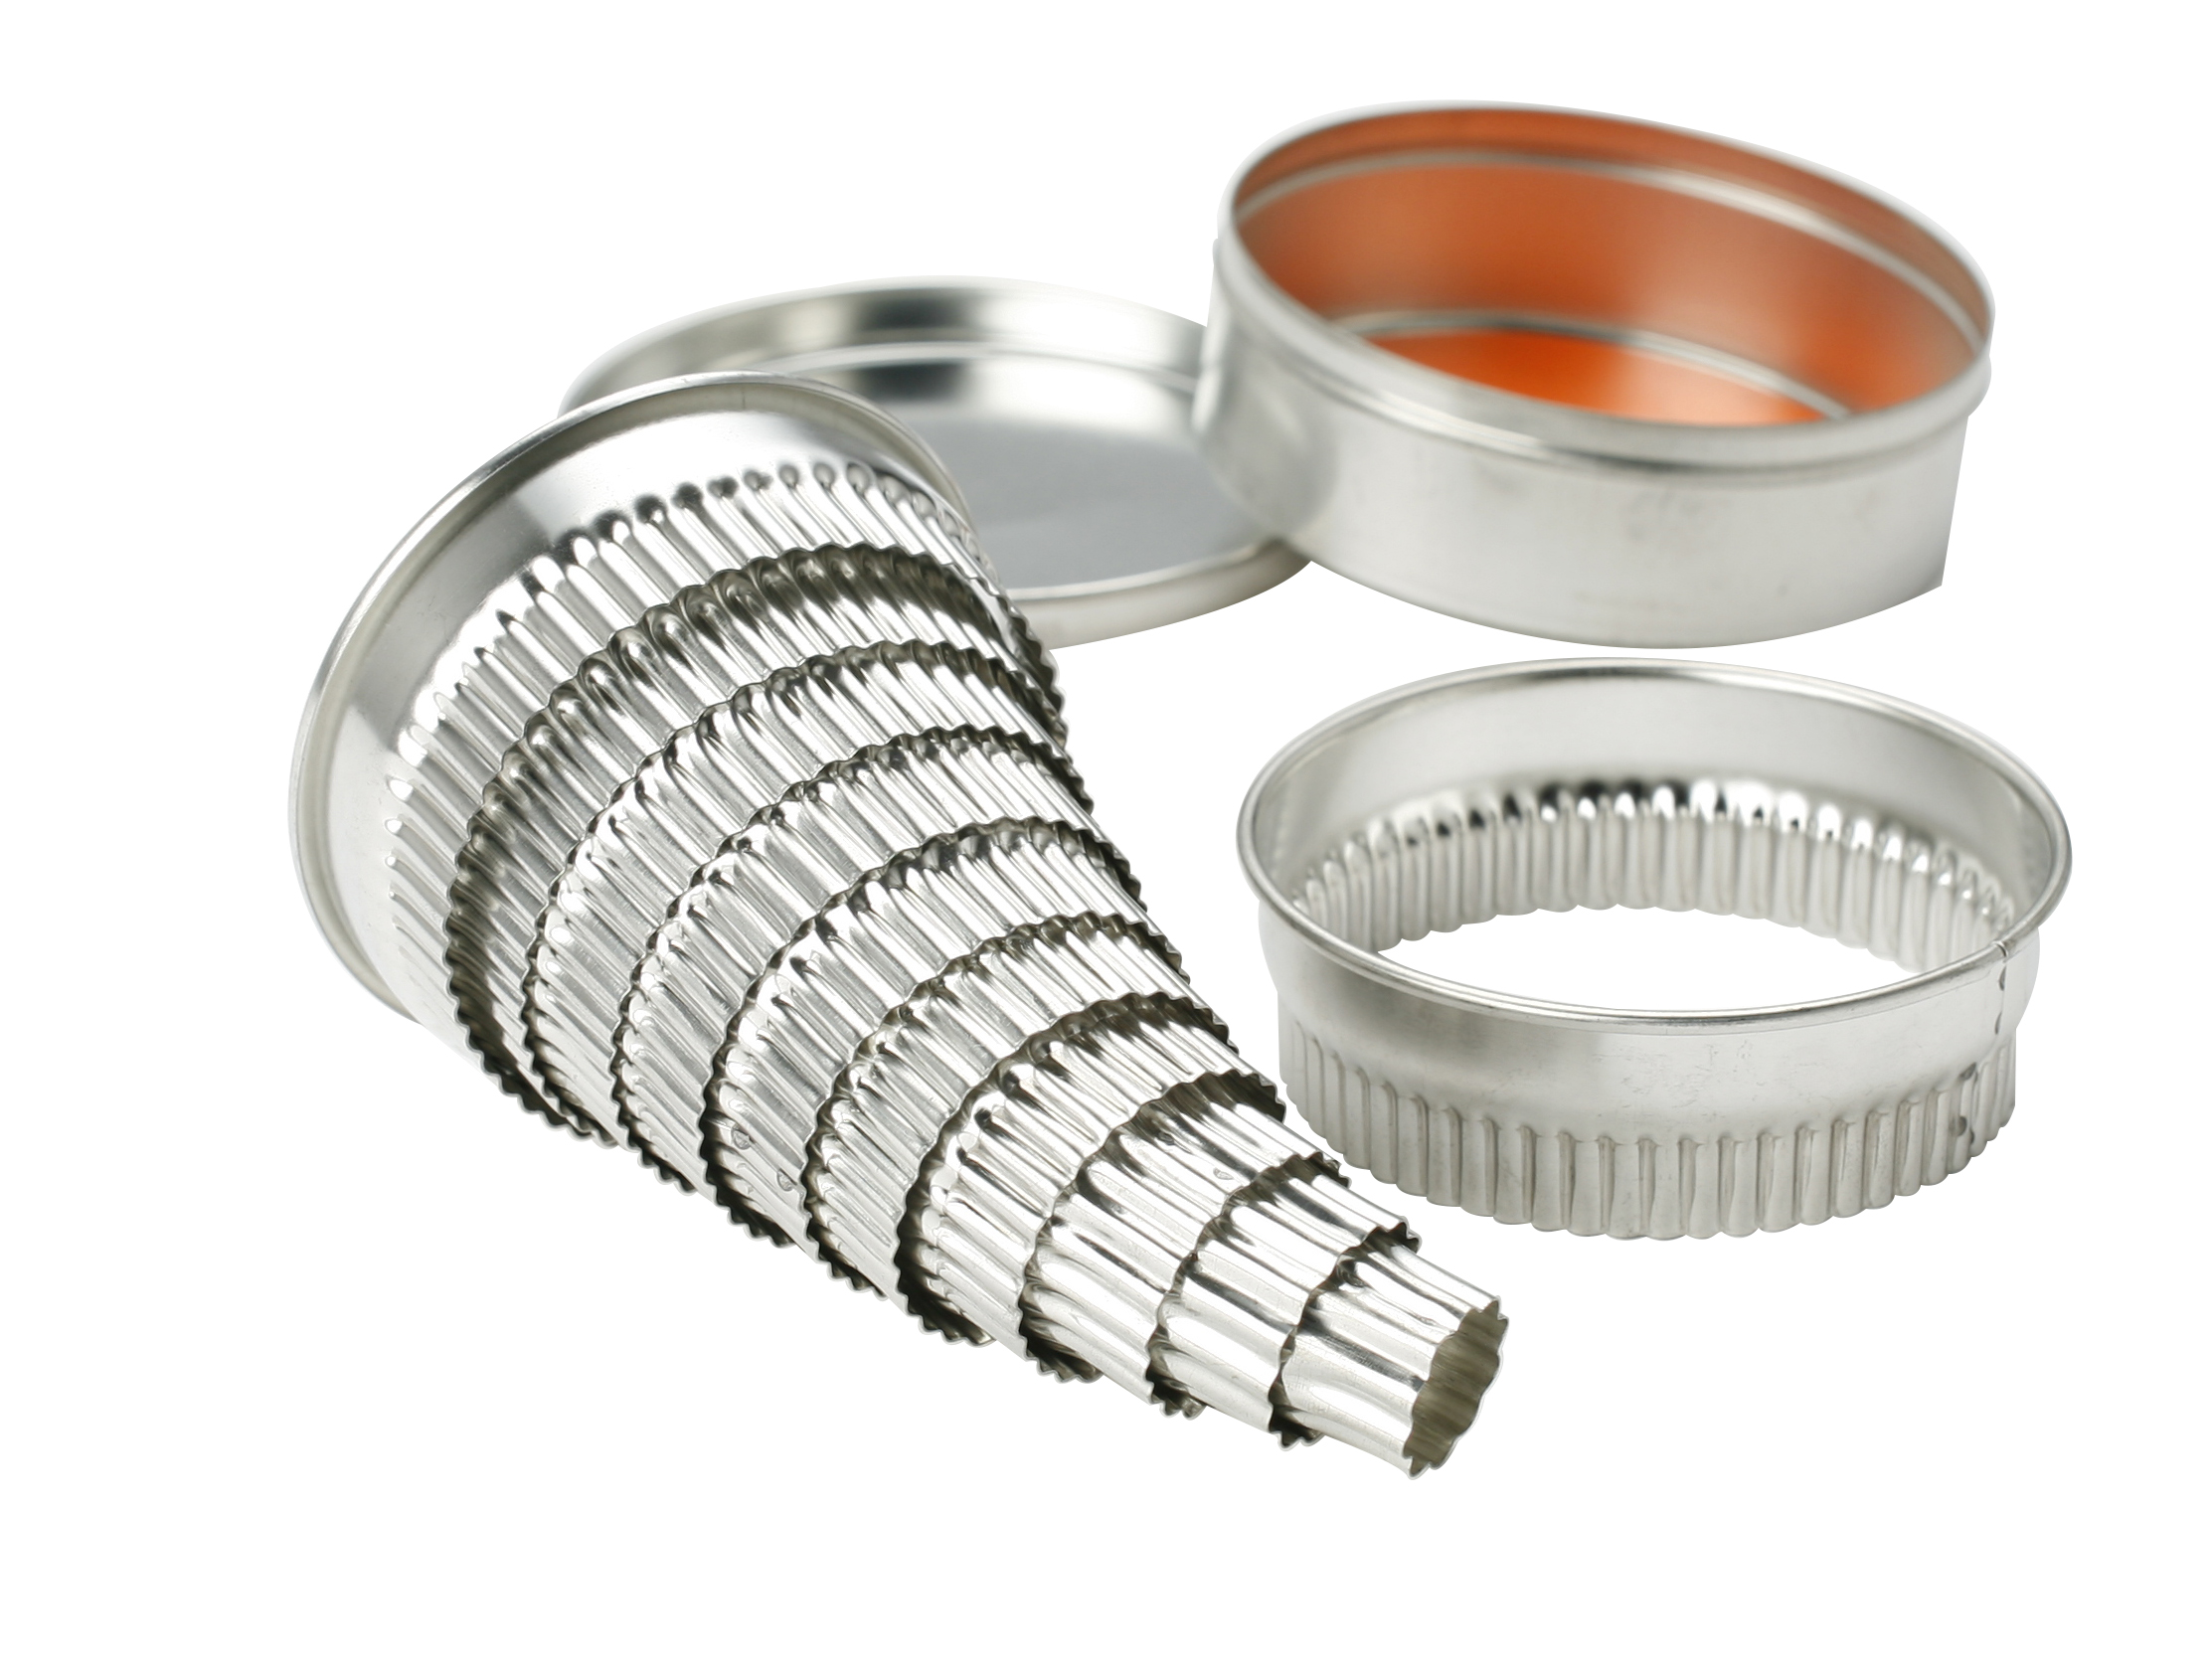 ROUND CUTTER SET TINNED FLUTED 10 PIECE